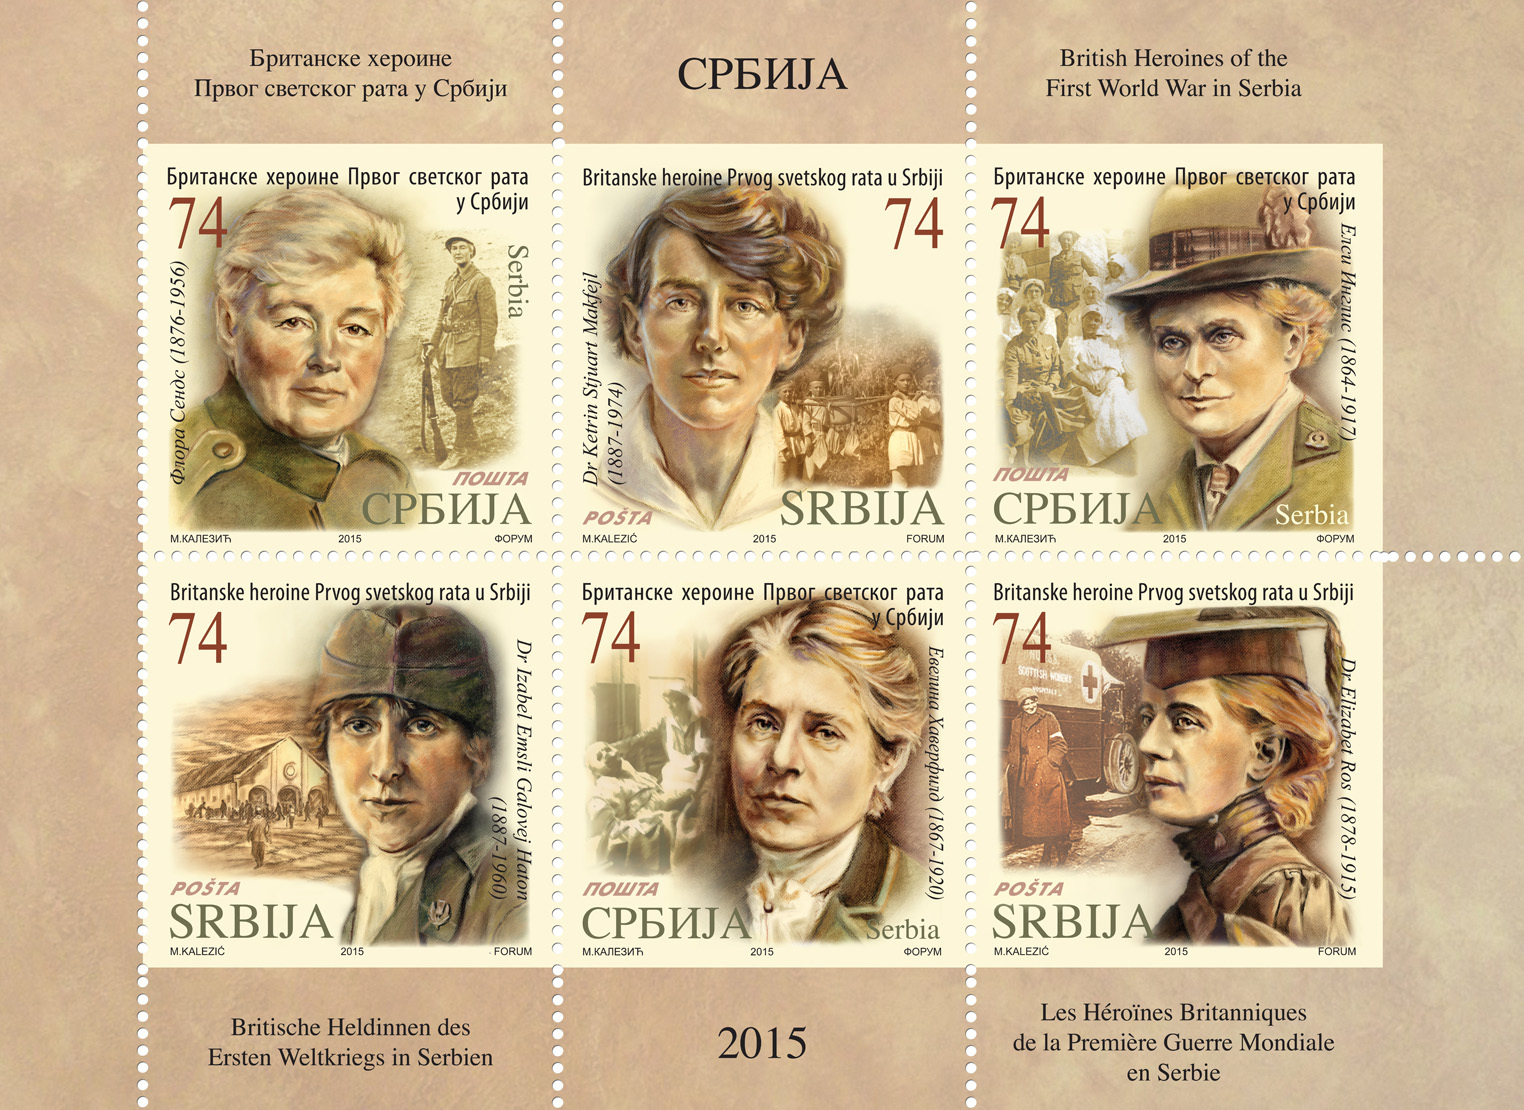 The stamps feature heroic Scots